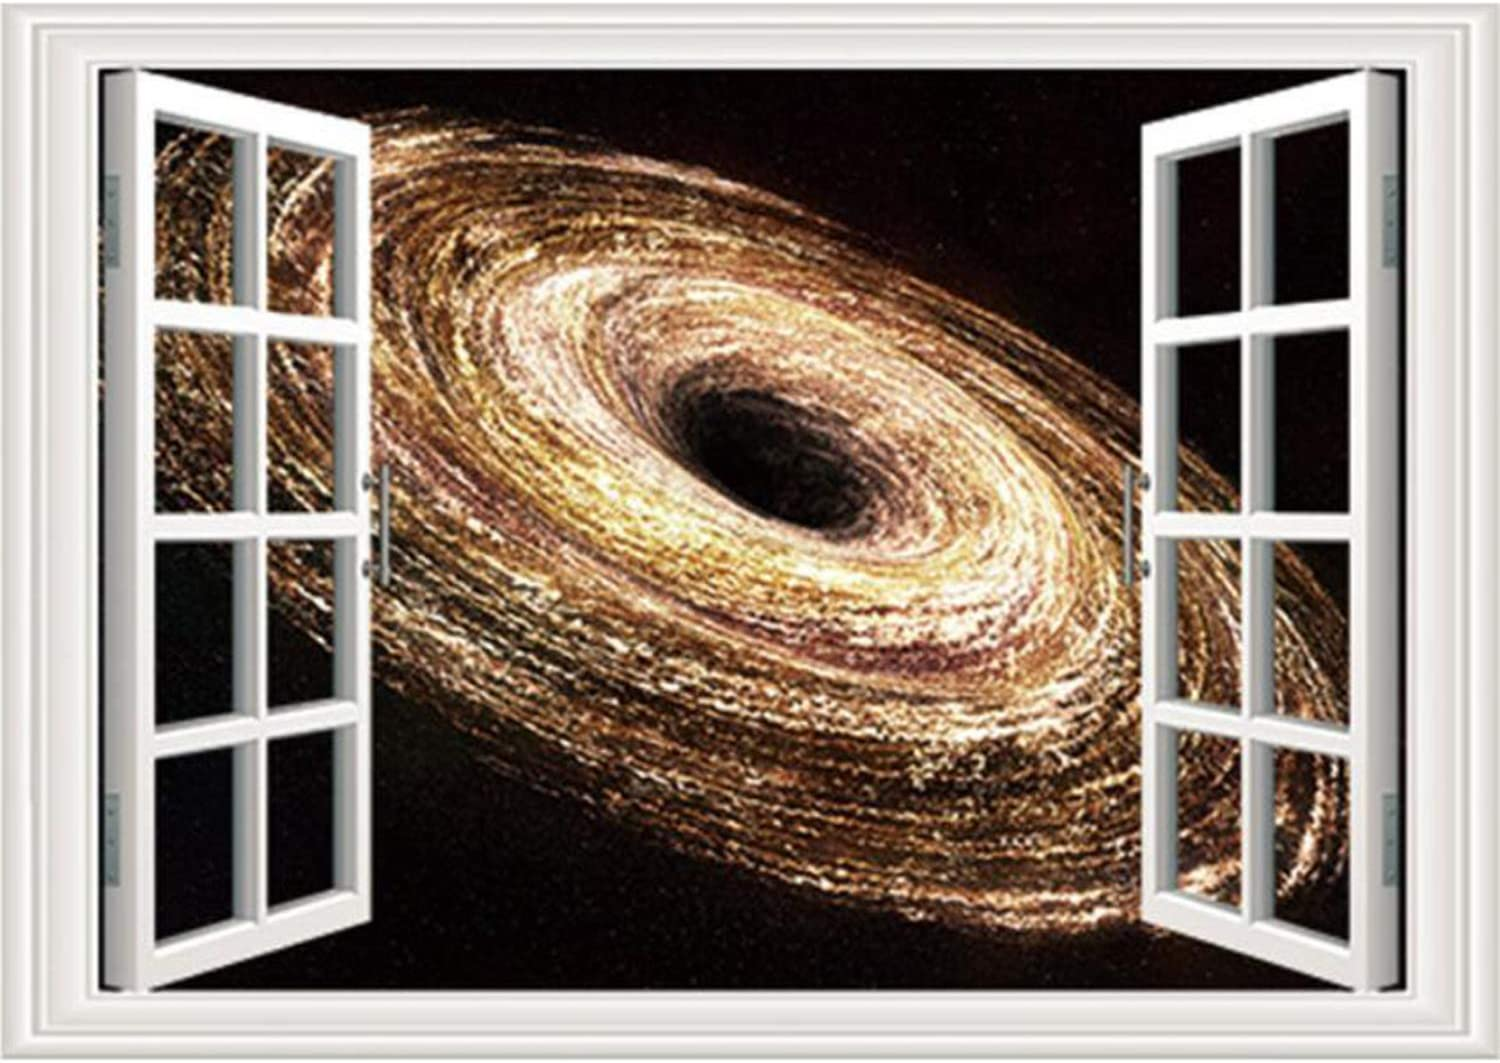 Prabahdak 3D Faux Windows Wall Sticker Removable Gold Spiral Galaxy Fake Windows Wall Sticker Vinyl Self-Adhesive Universe Space Wall Mural Stickers for Bedroom Living Room Decoration